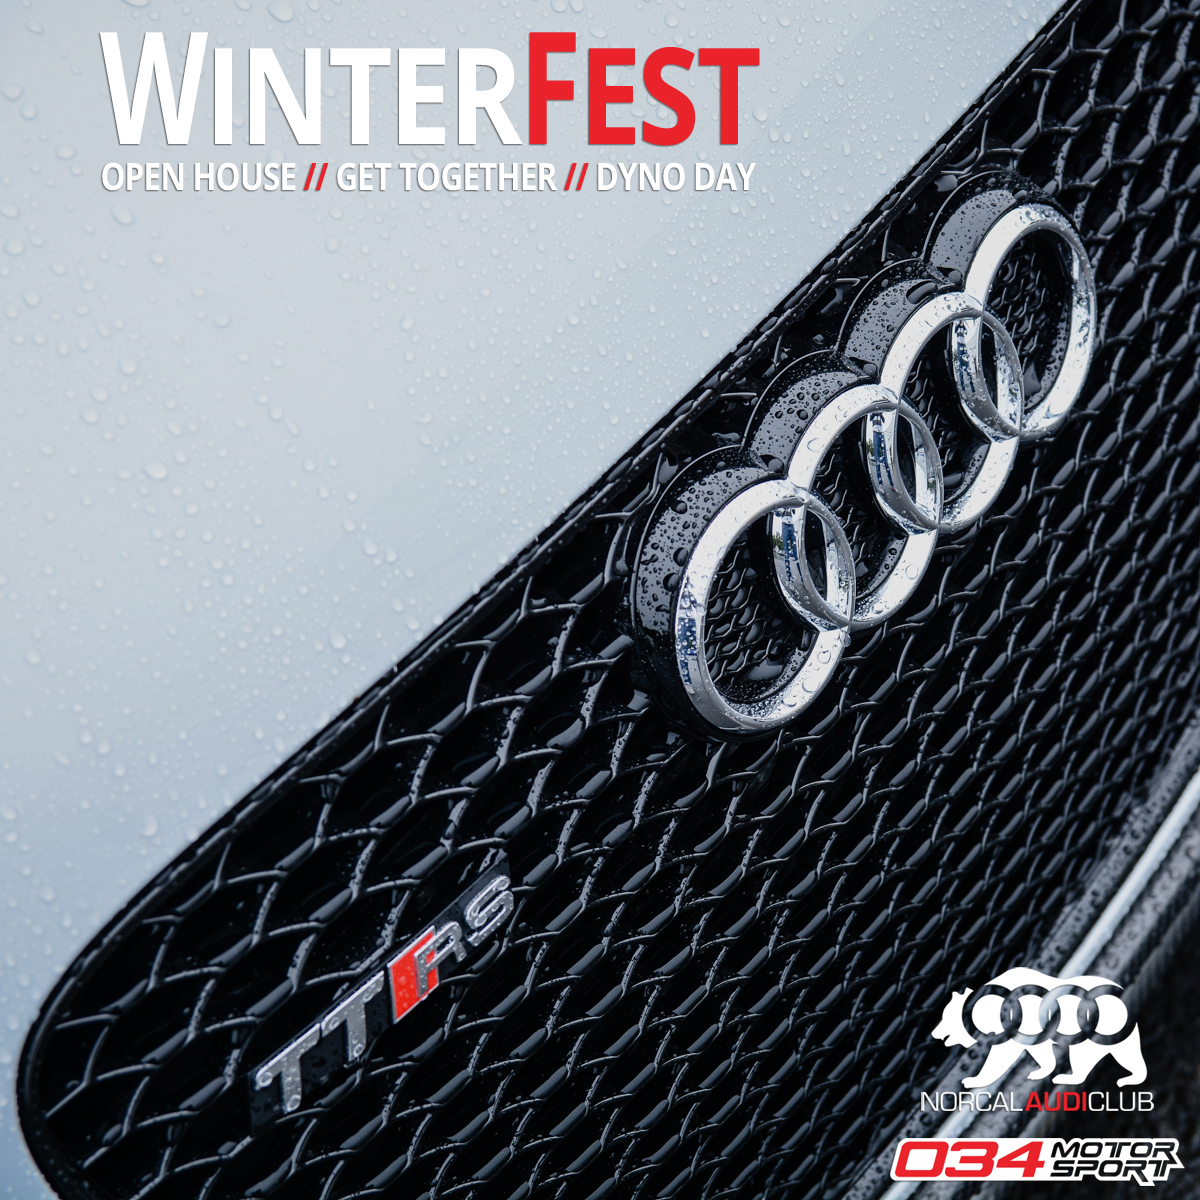 WinterFest 2017 by 034Motorsport